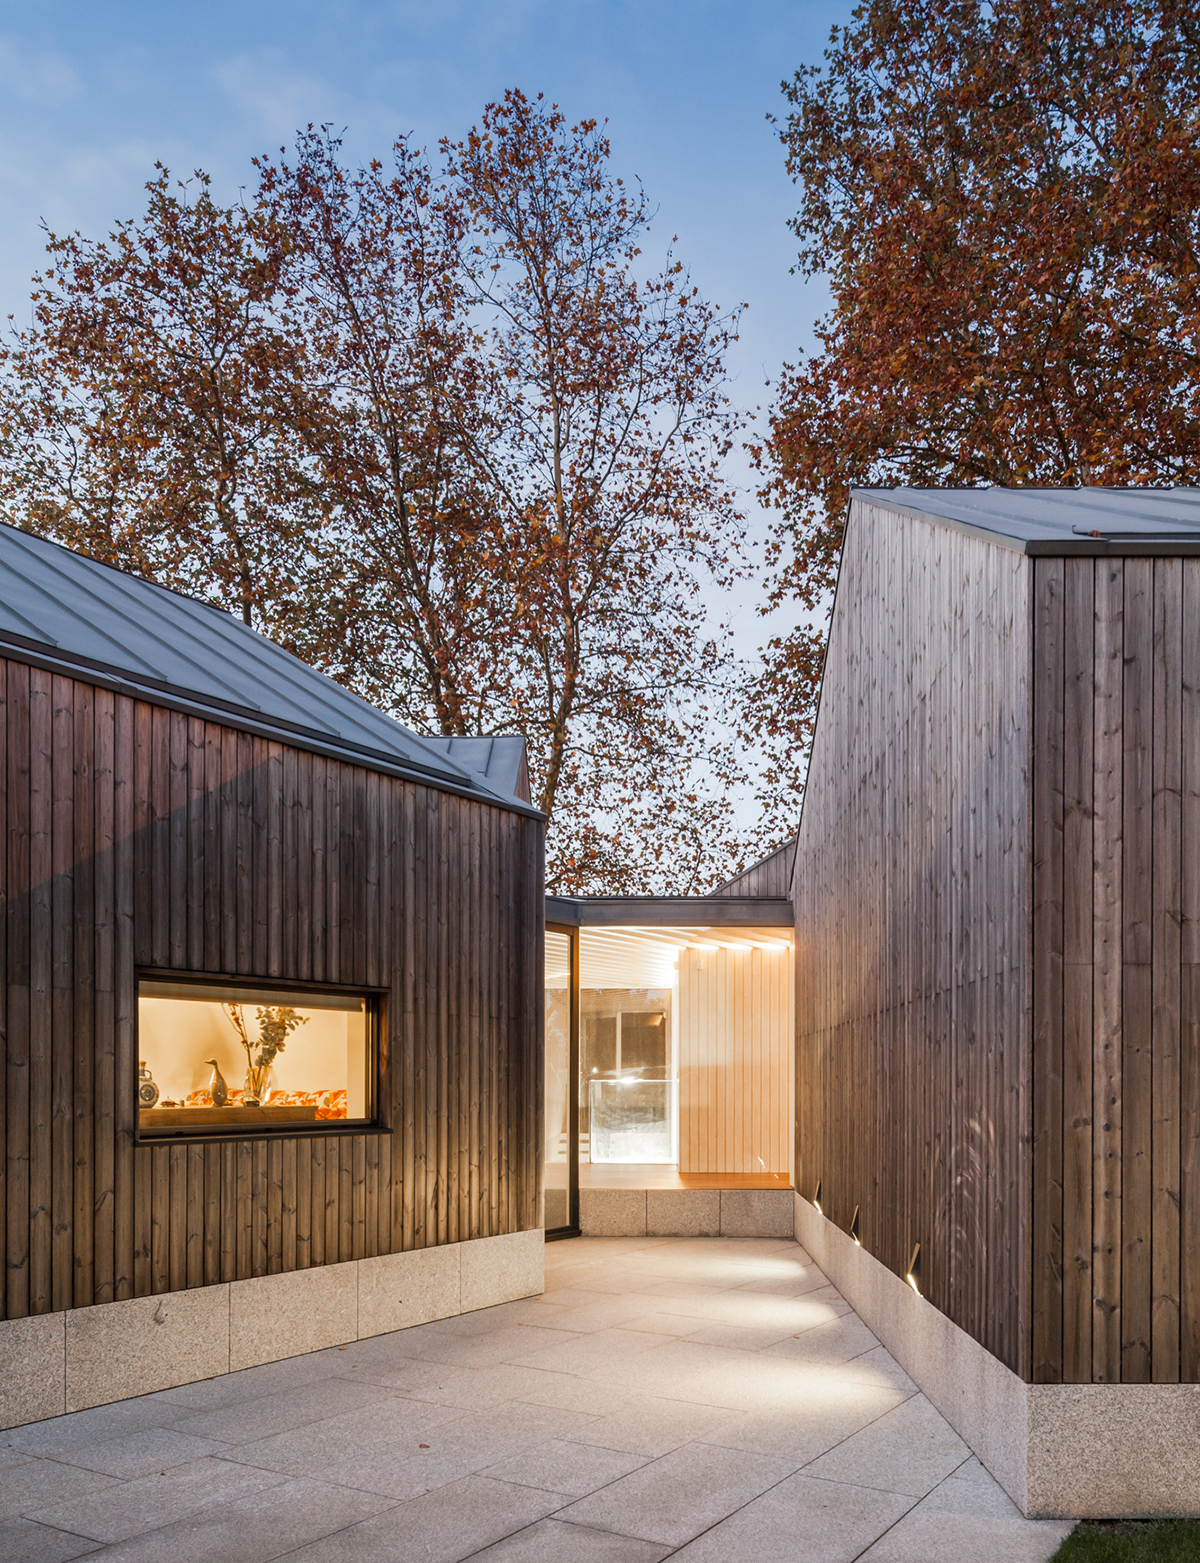 PROD Aquitectura's House of Four Houses in Portugal | KNSTRCT